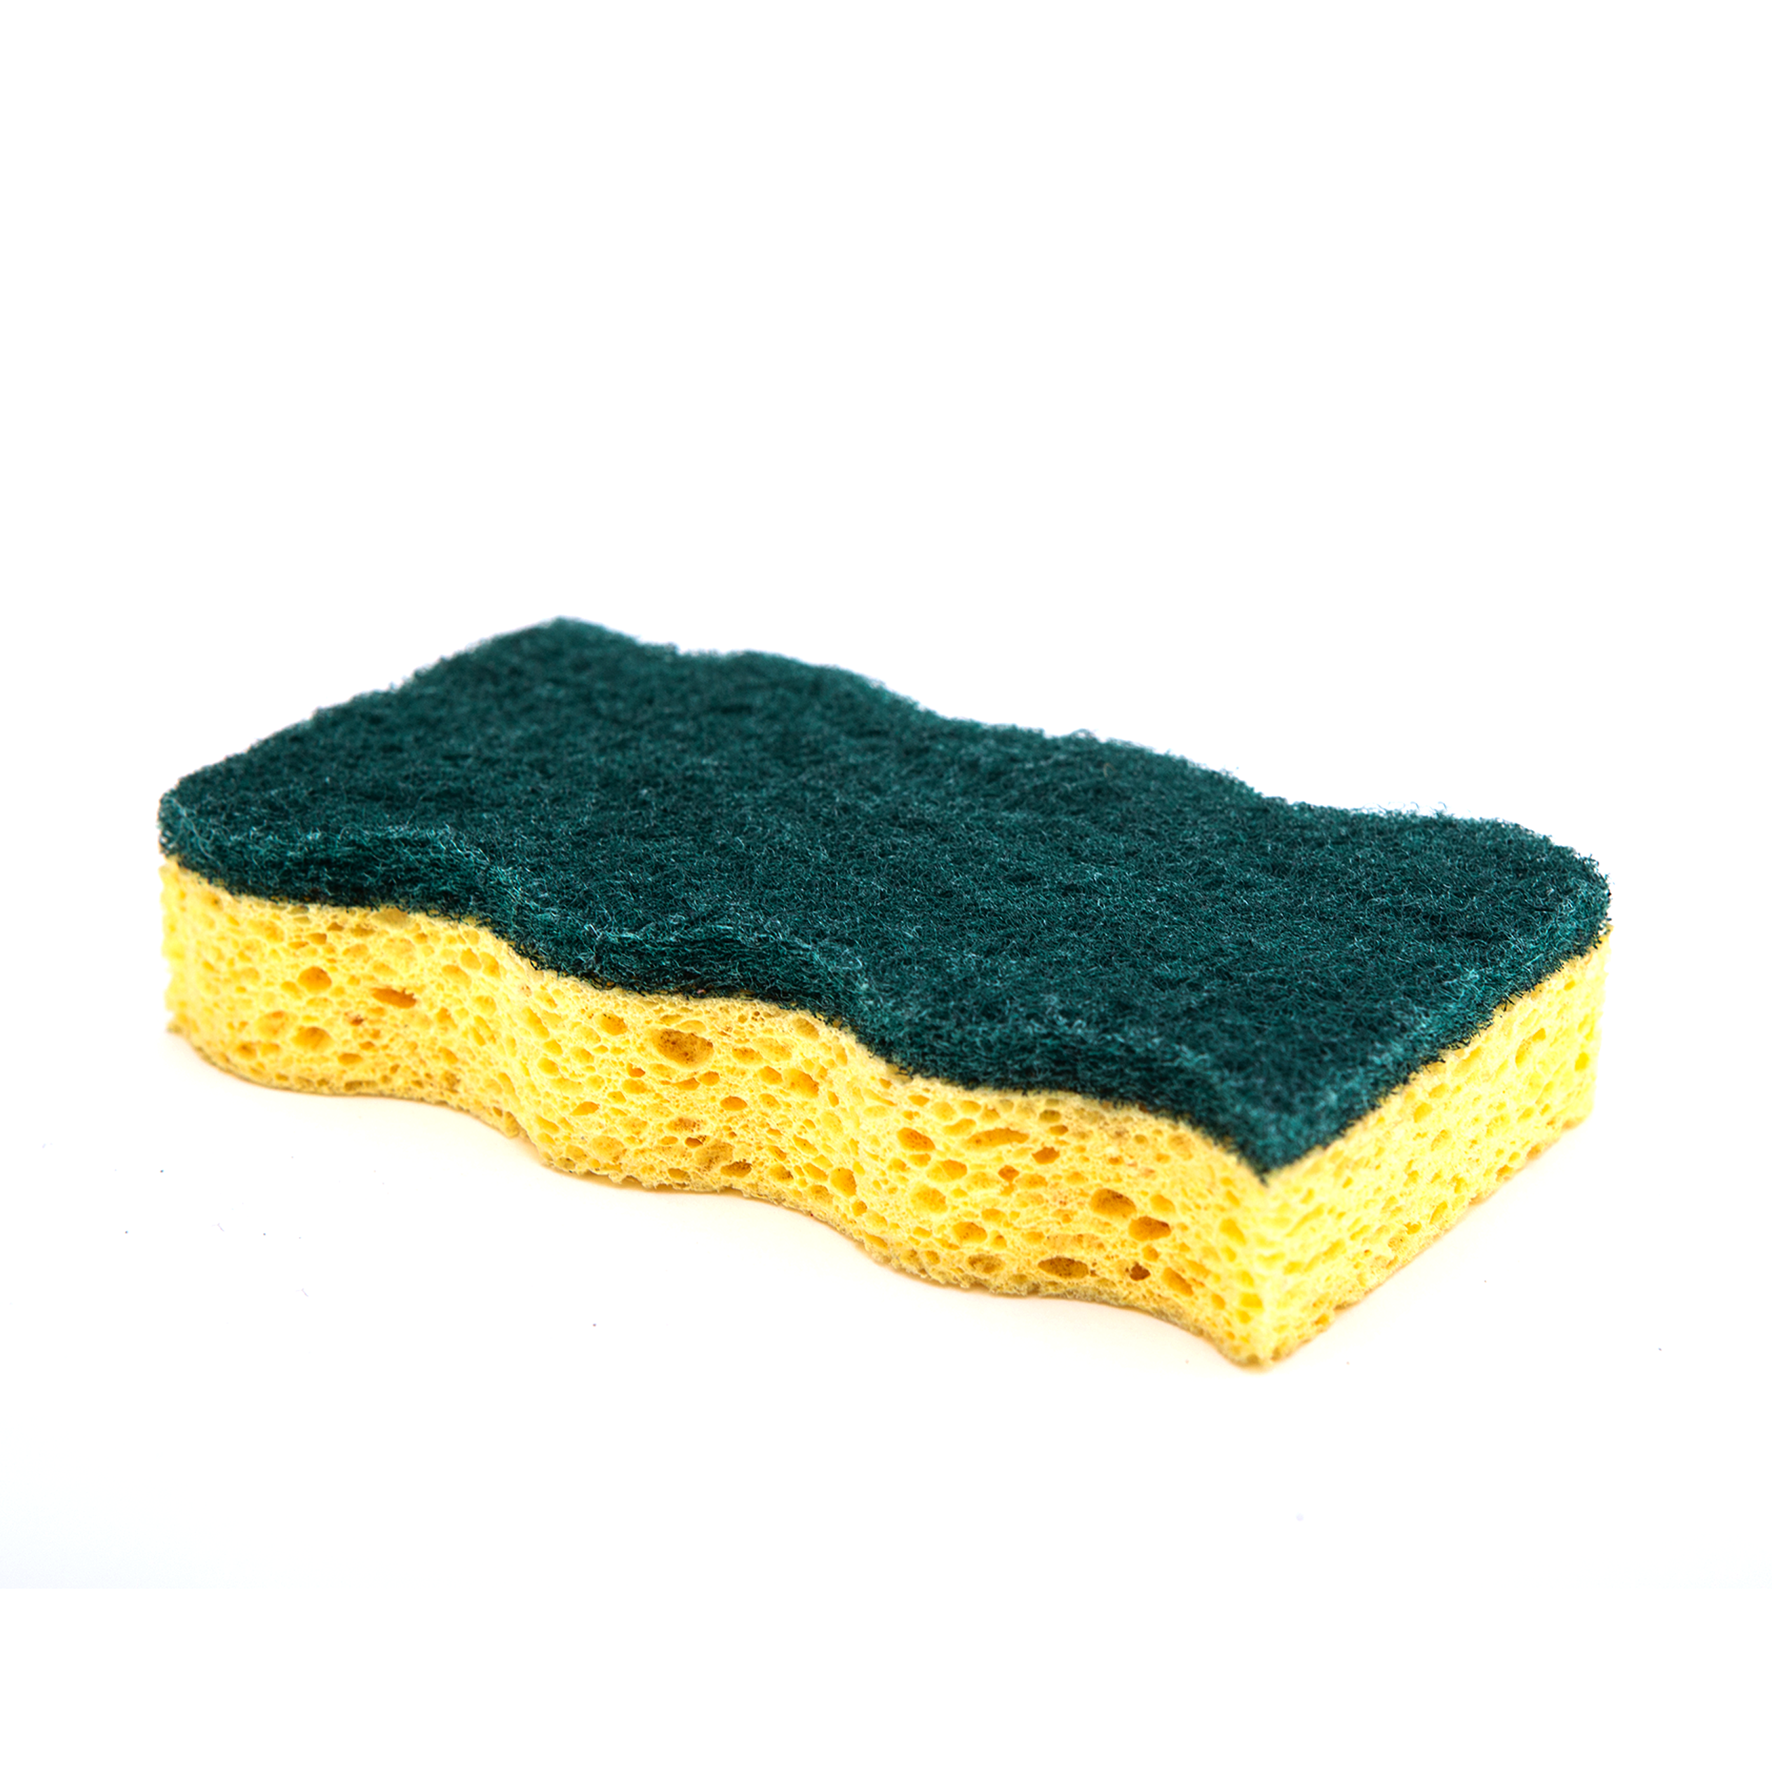 Introduction to the use and function of scouring pad